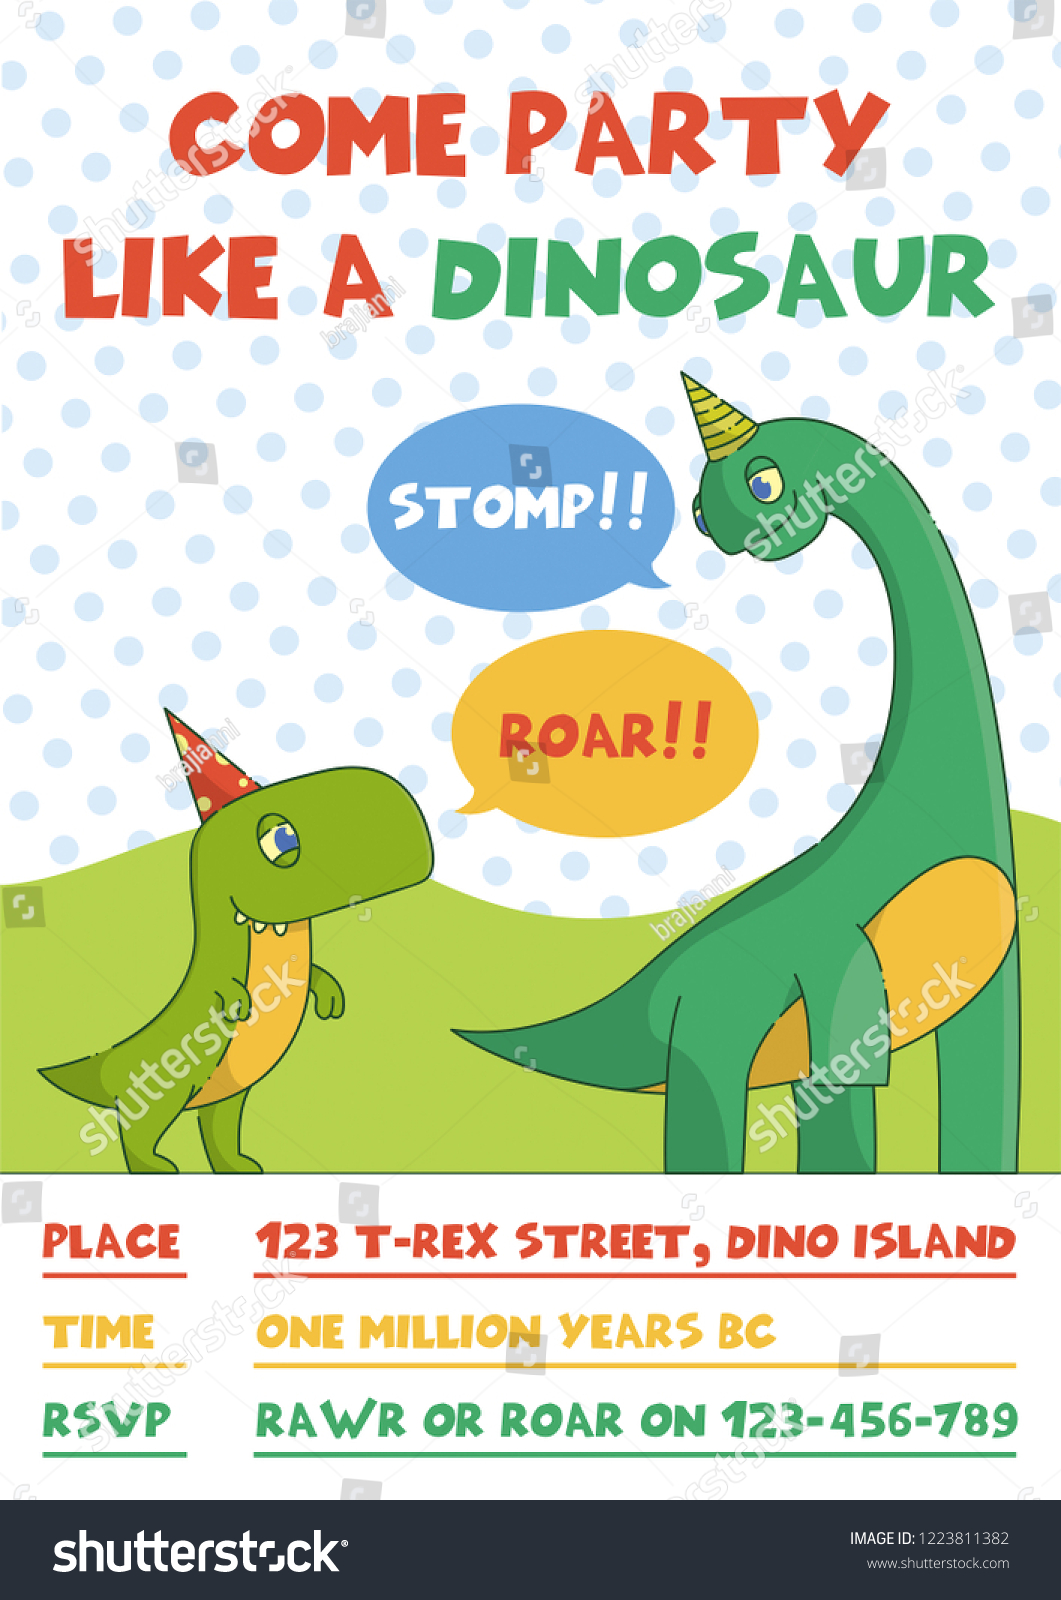 Birthday Party Invitation With T Rex And Brachiosaurus Cute Animal Character Line Art Little Tyrannosaurus Diplodocus